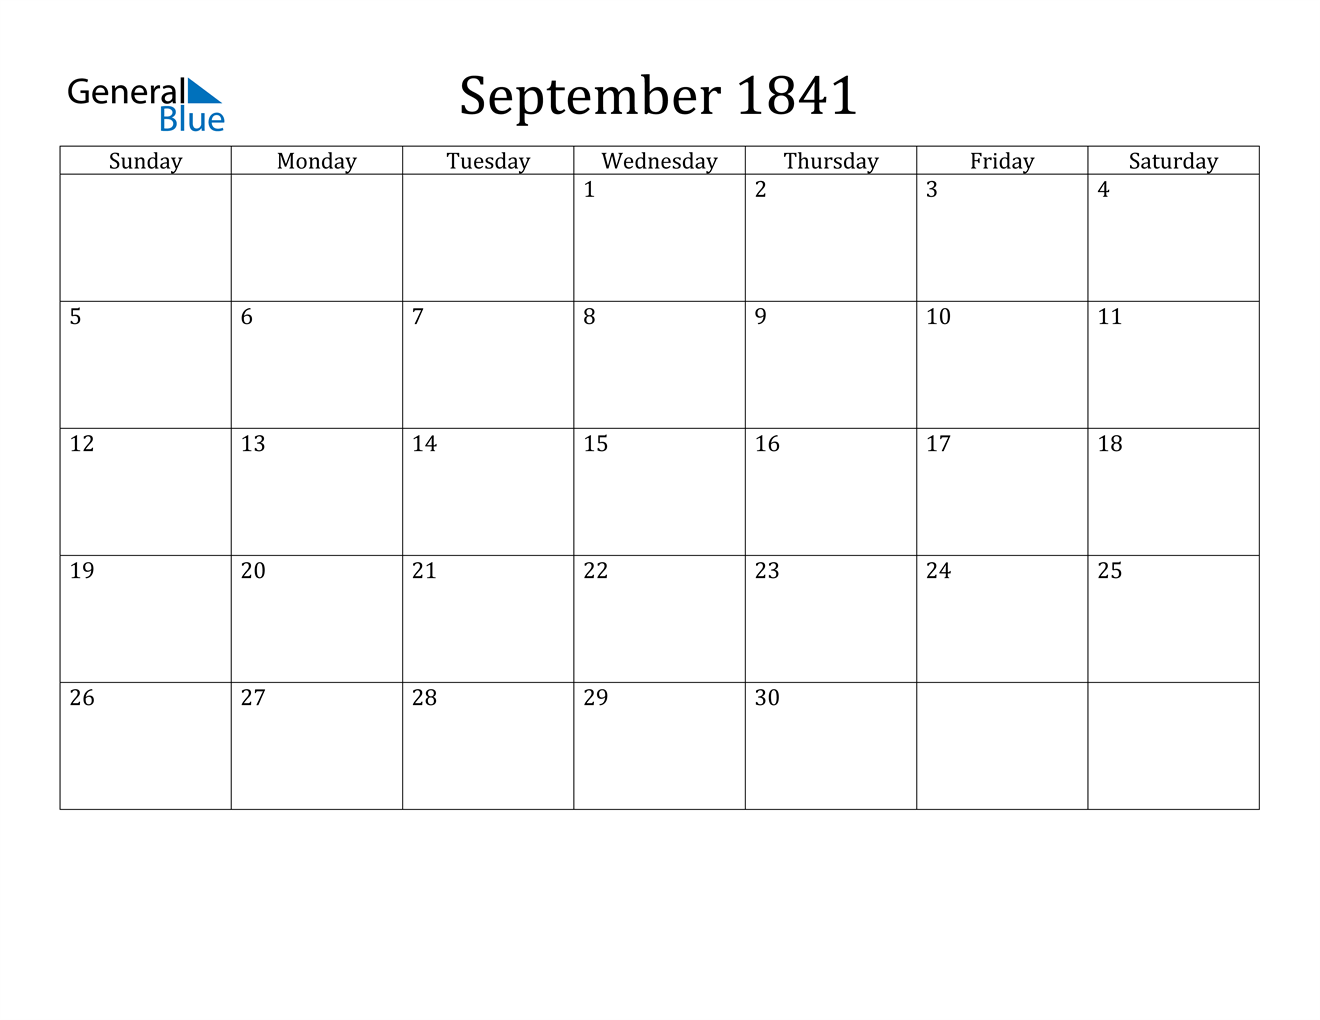 Image of September 1841 Calendar